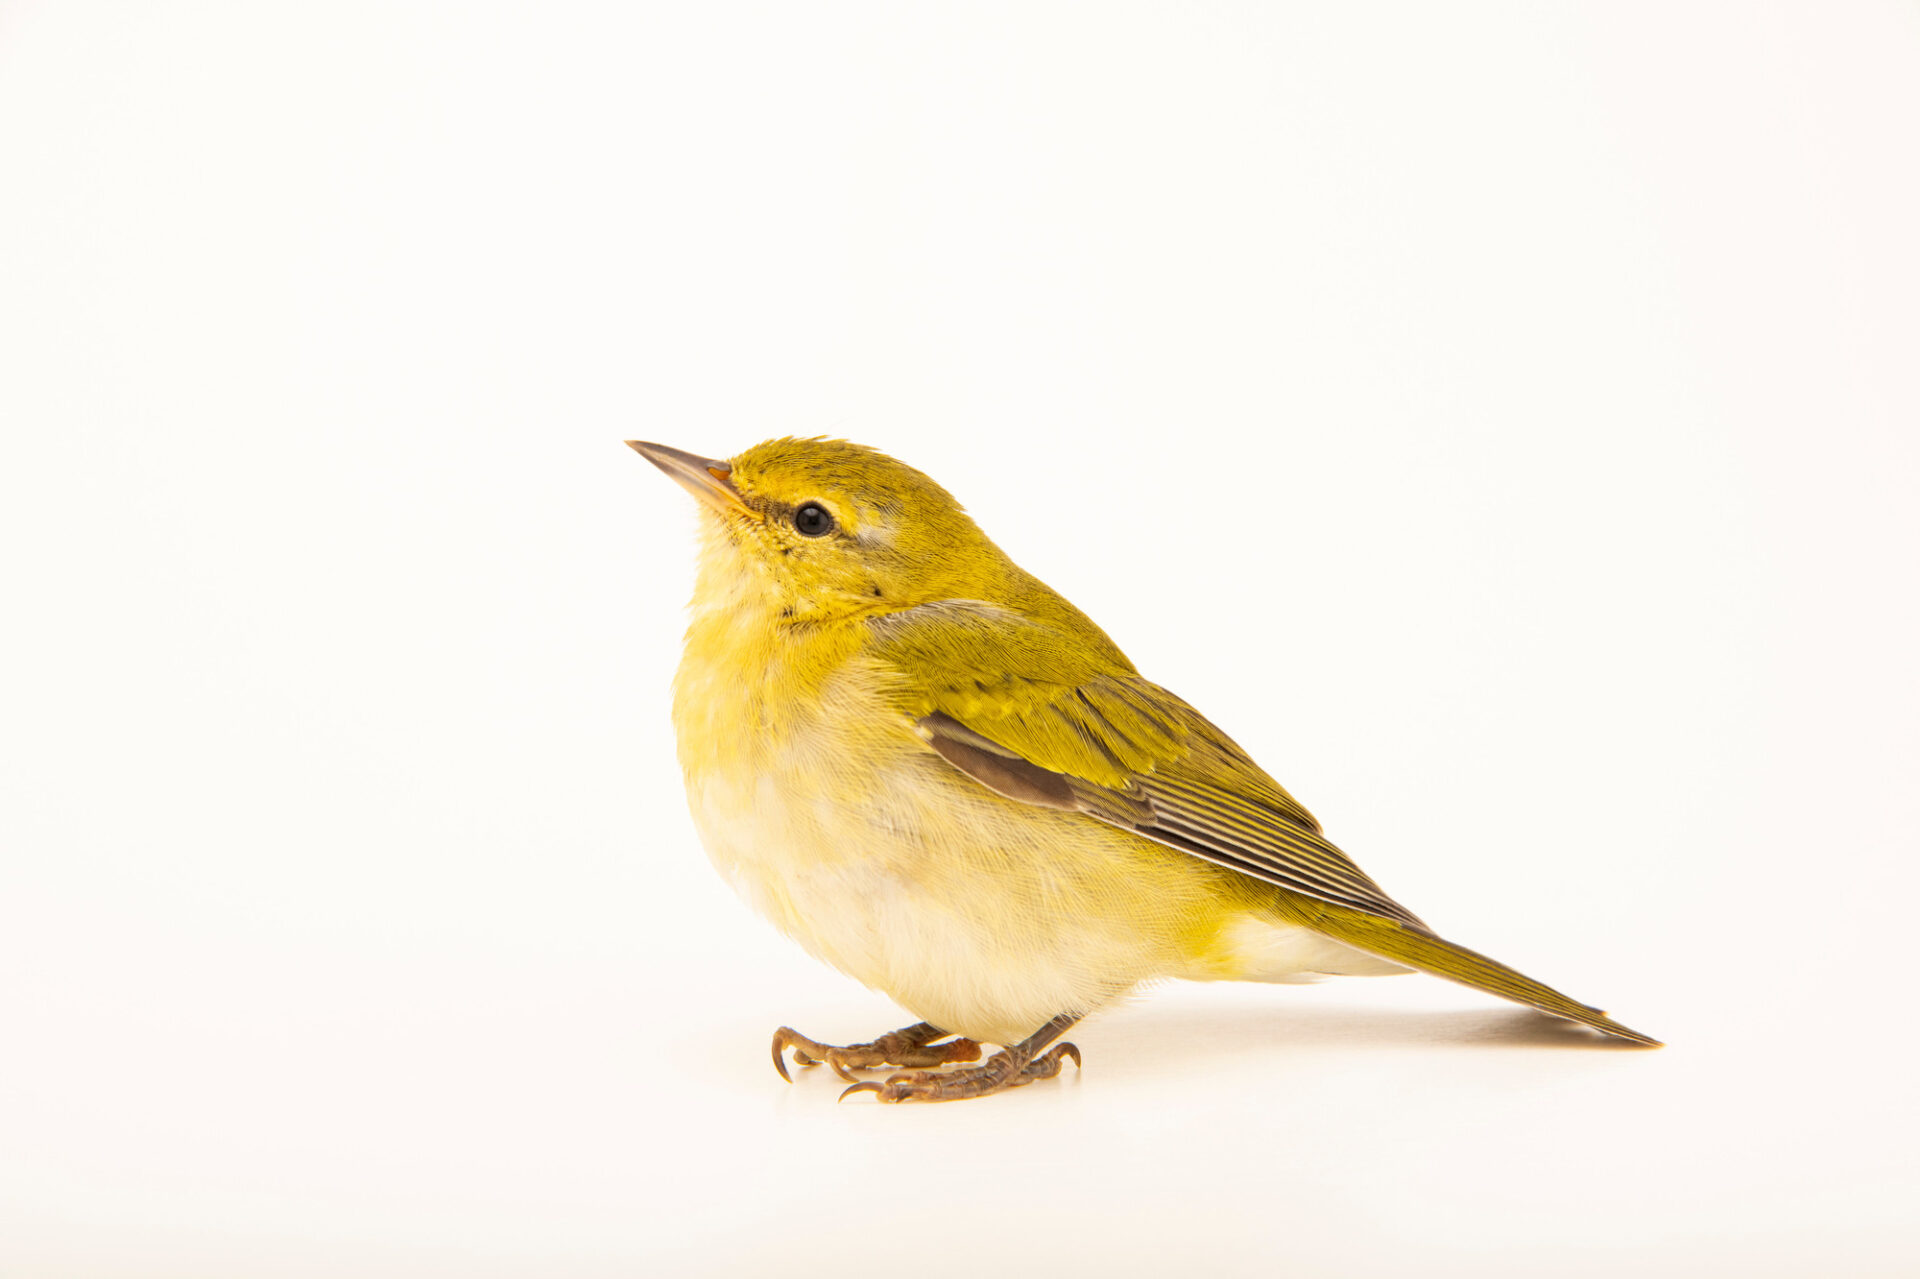 Photo: A Tennessee warbler (Oreothlypis peregrina) at the Wildlife Rehab Center of Minnesota.